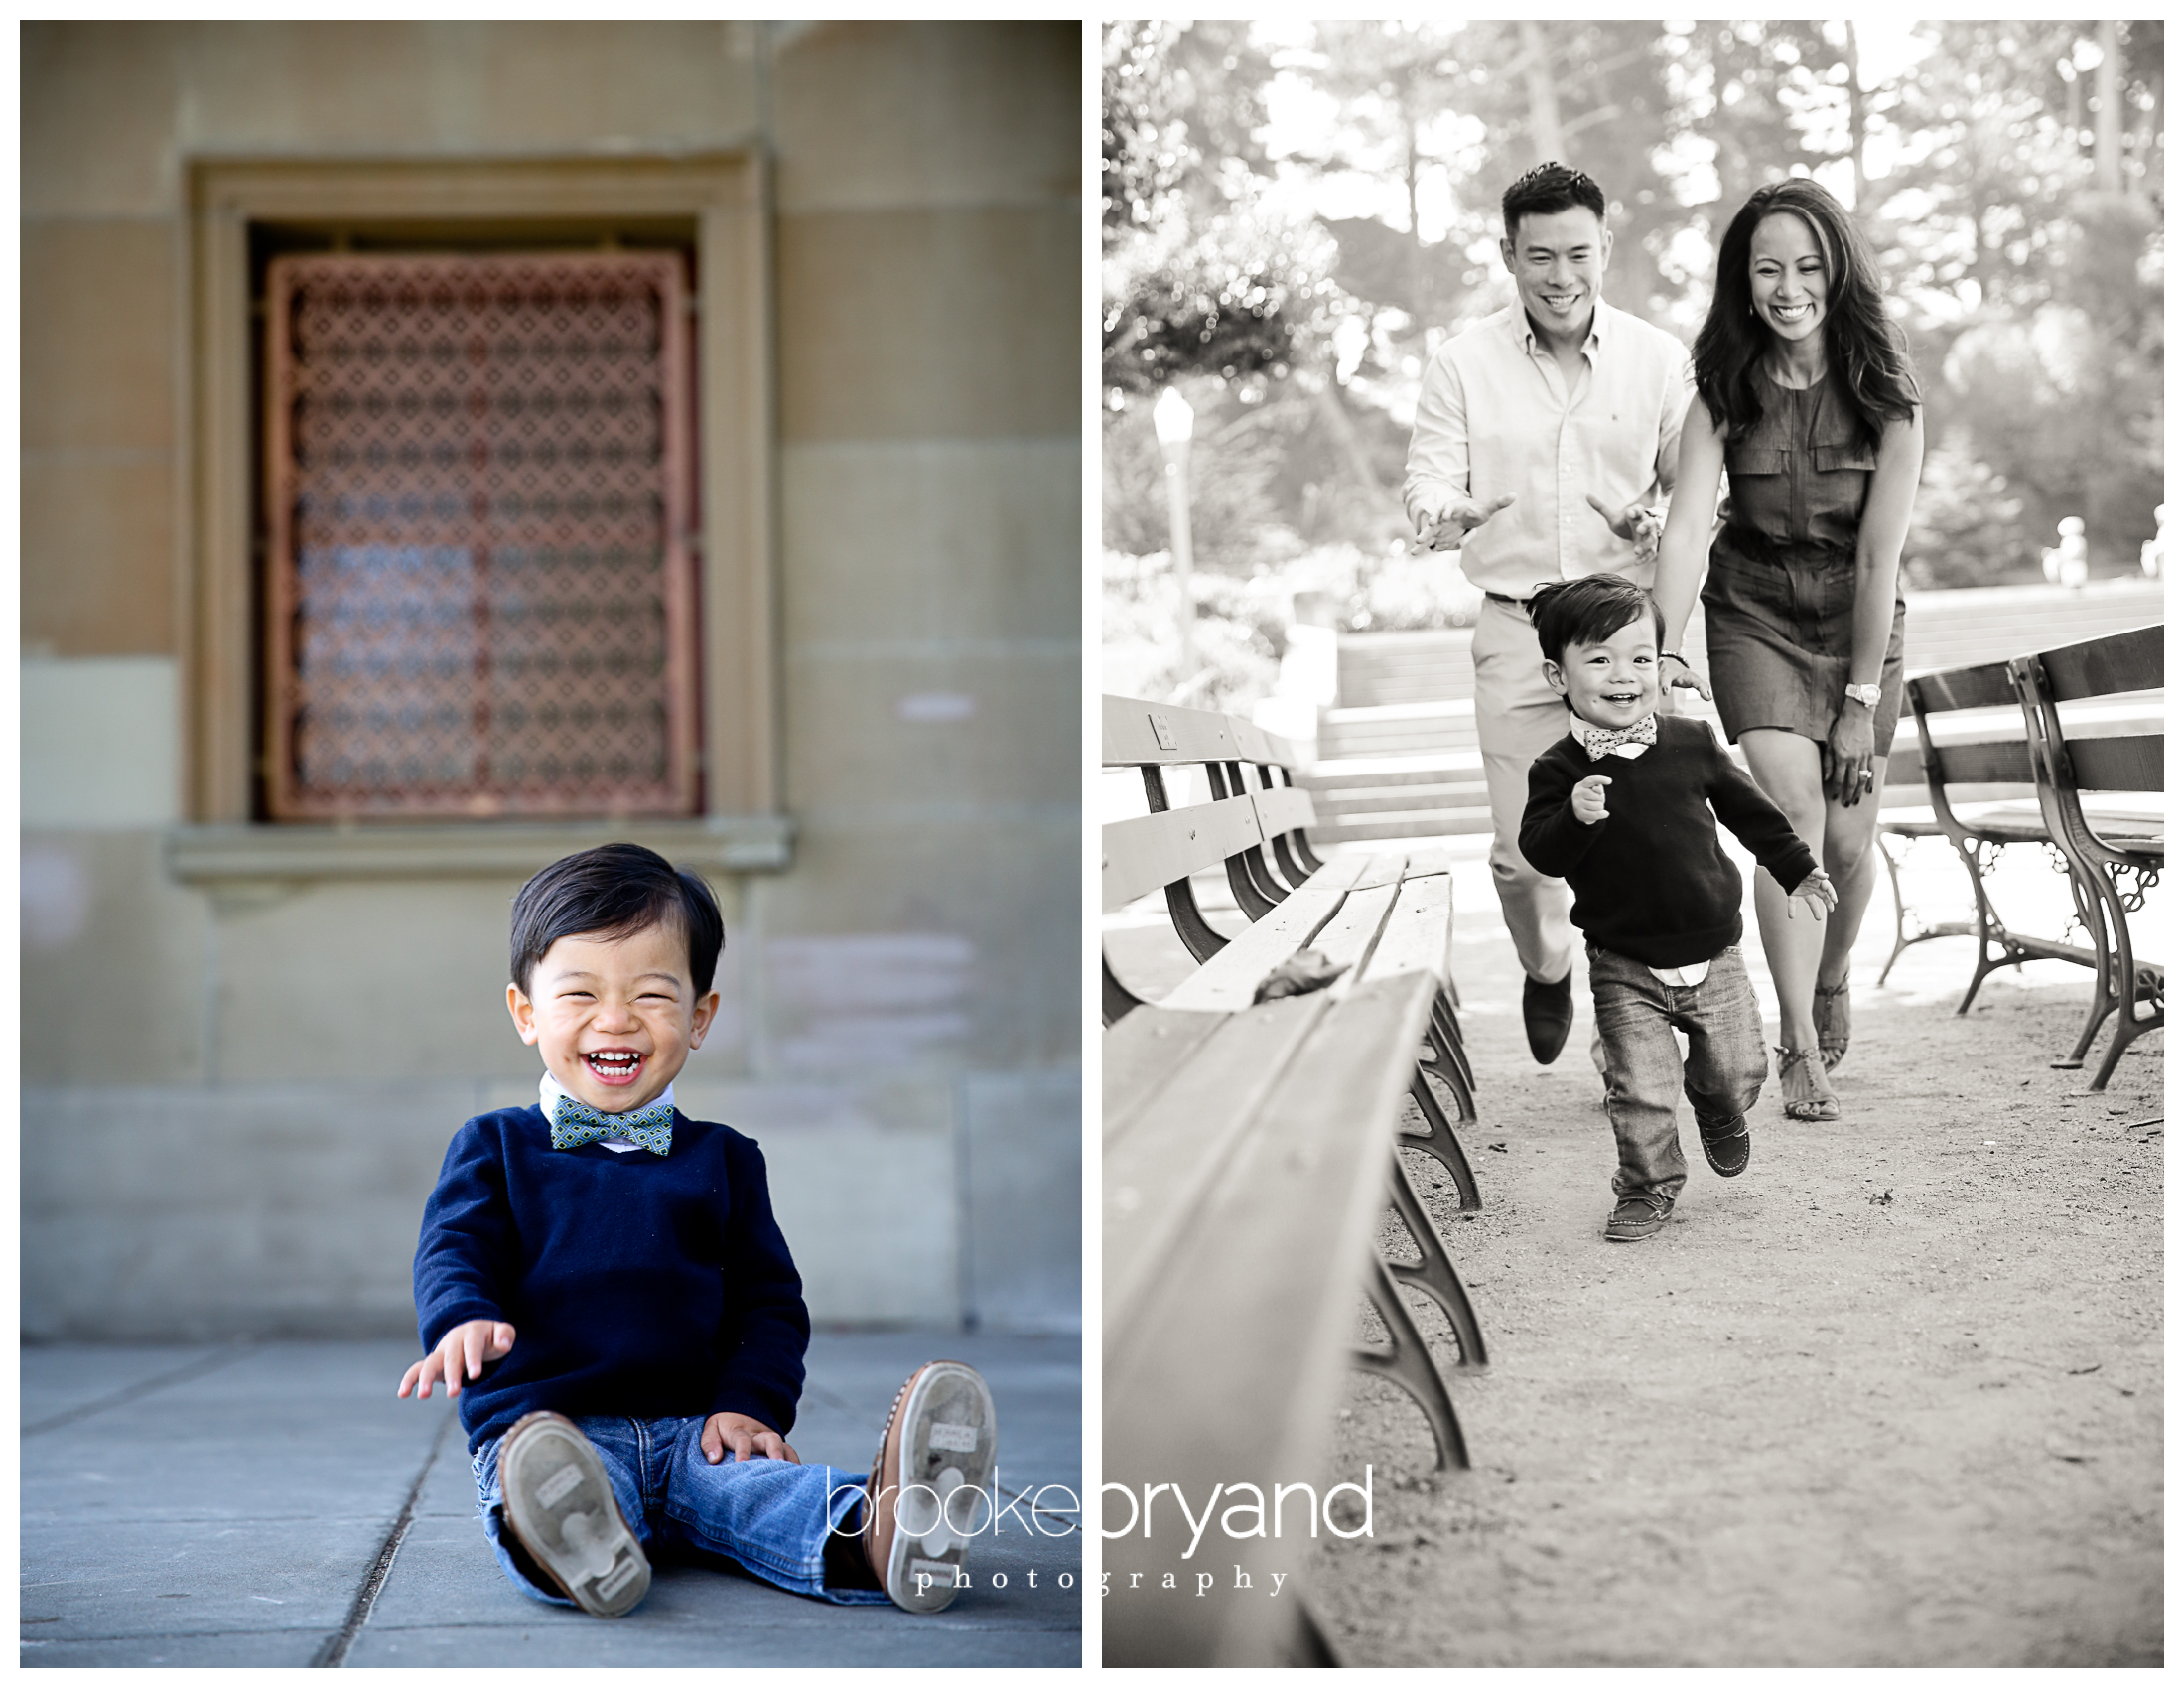 2-up-golden-gate-park-family-photos-brooke-bryand-photography-san-francisco-family-photographer-3a.jpg